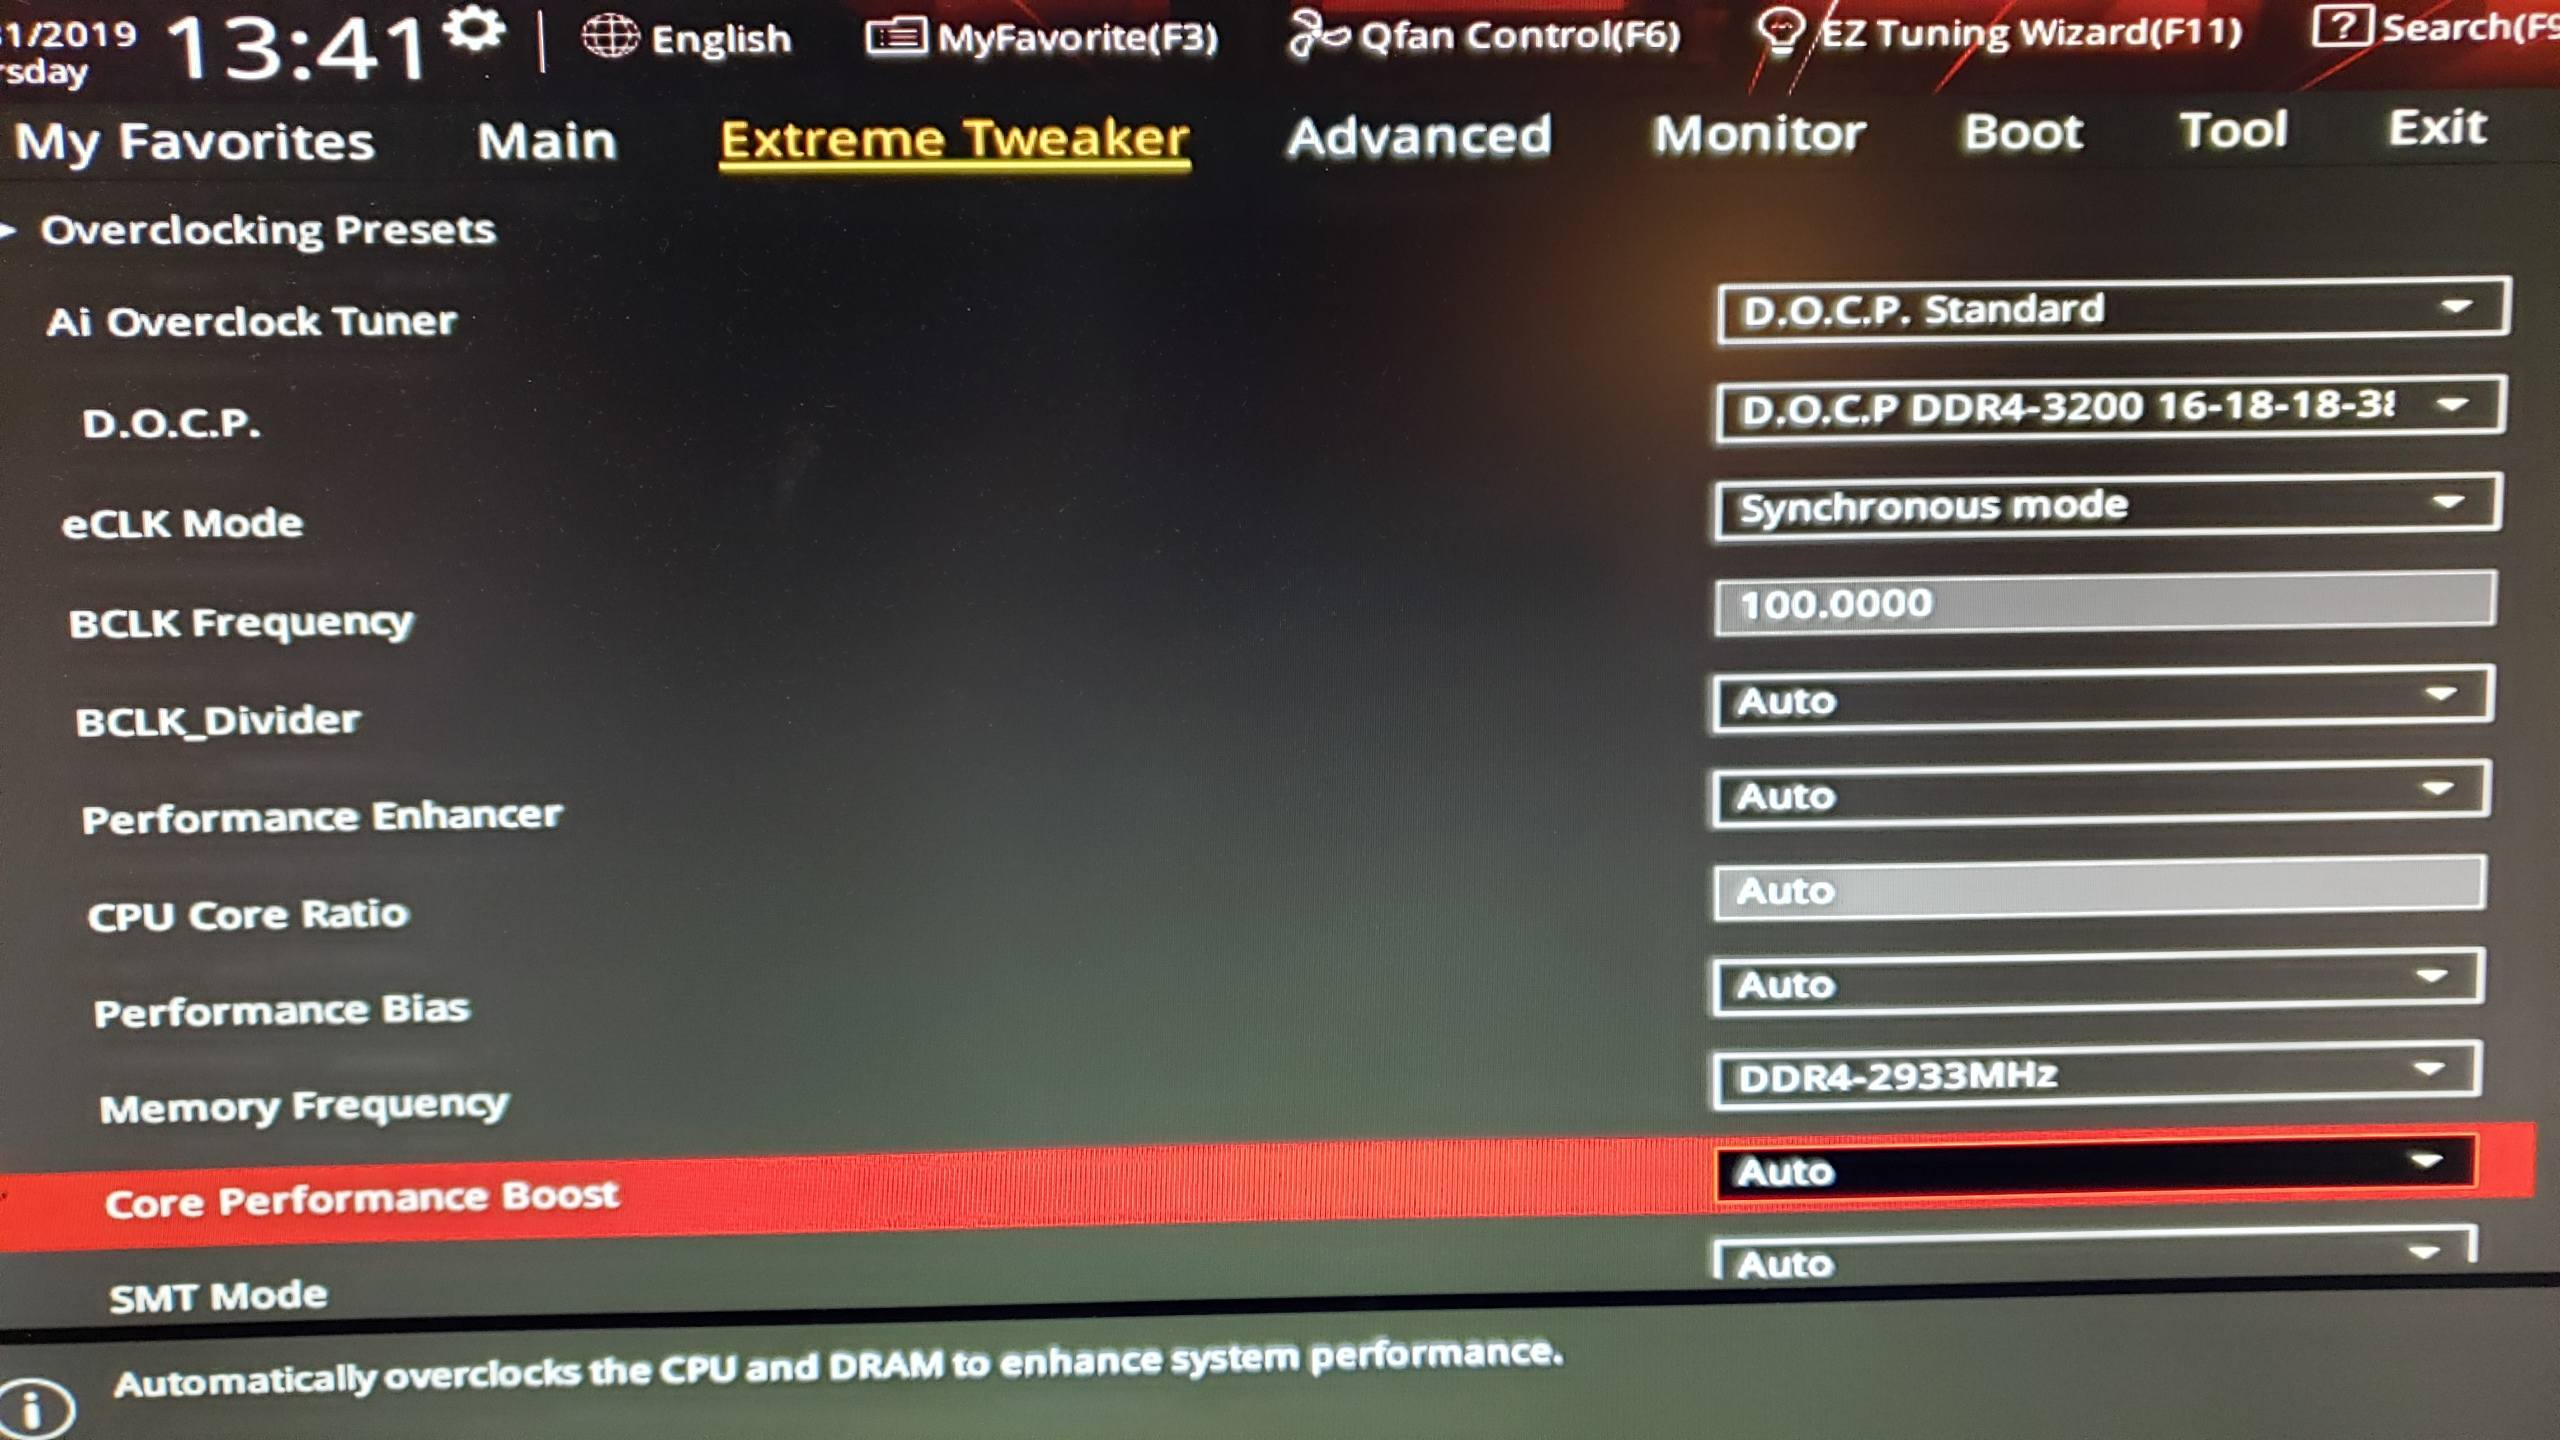 Need some help with RAM overclocking - CPUs, Motherboards, and